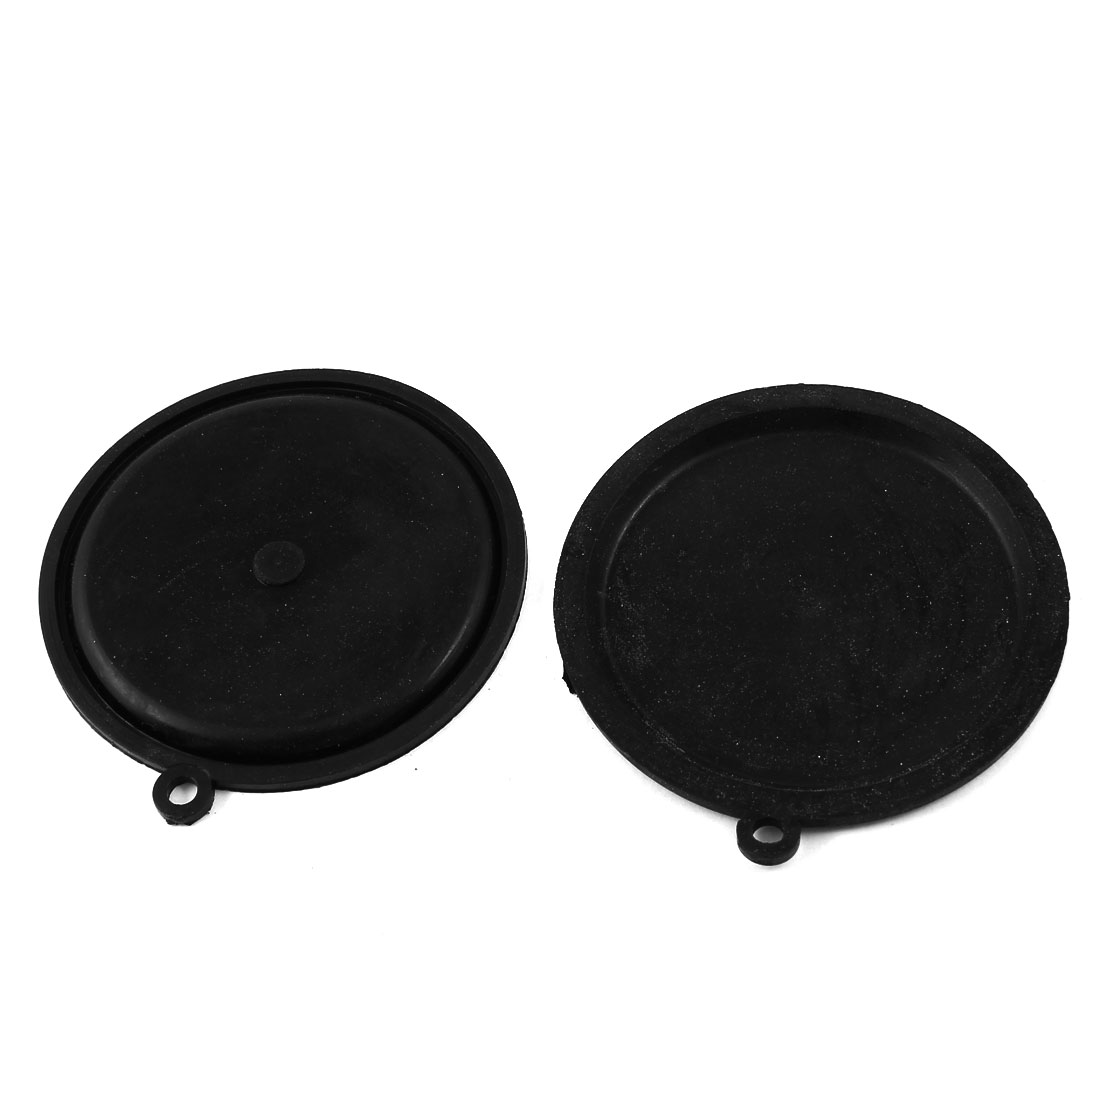 75mm Dia Flexible Water Heater Heating Diaphragms Washer Seal 2pcs